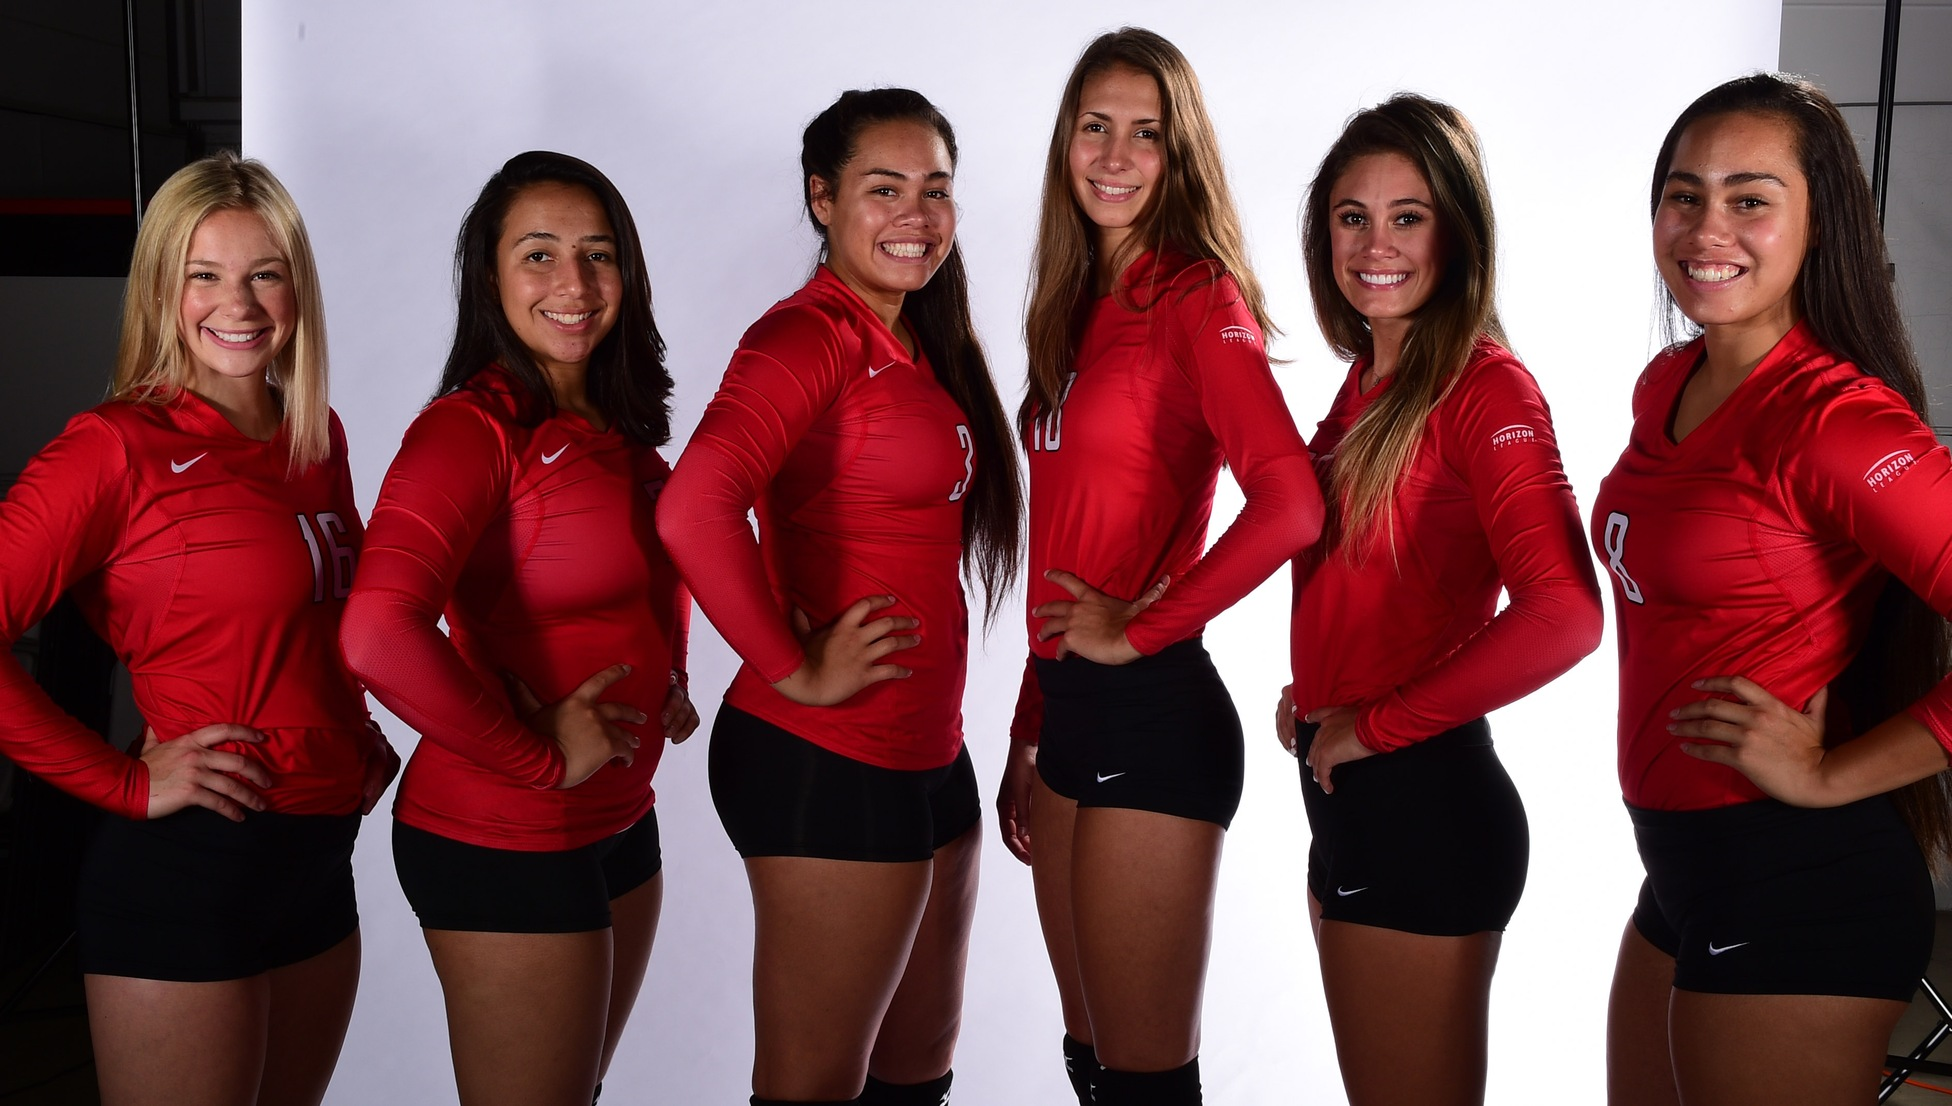 Morgan Cleevely, Giovanna Kuntze, Brooklen Pe'a, Ashley Starzyk, Alexia Byrnes and Kaybrie Pe'a